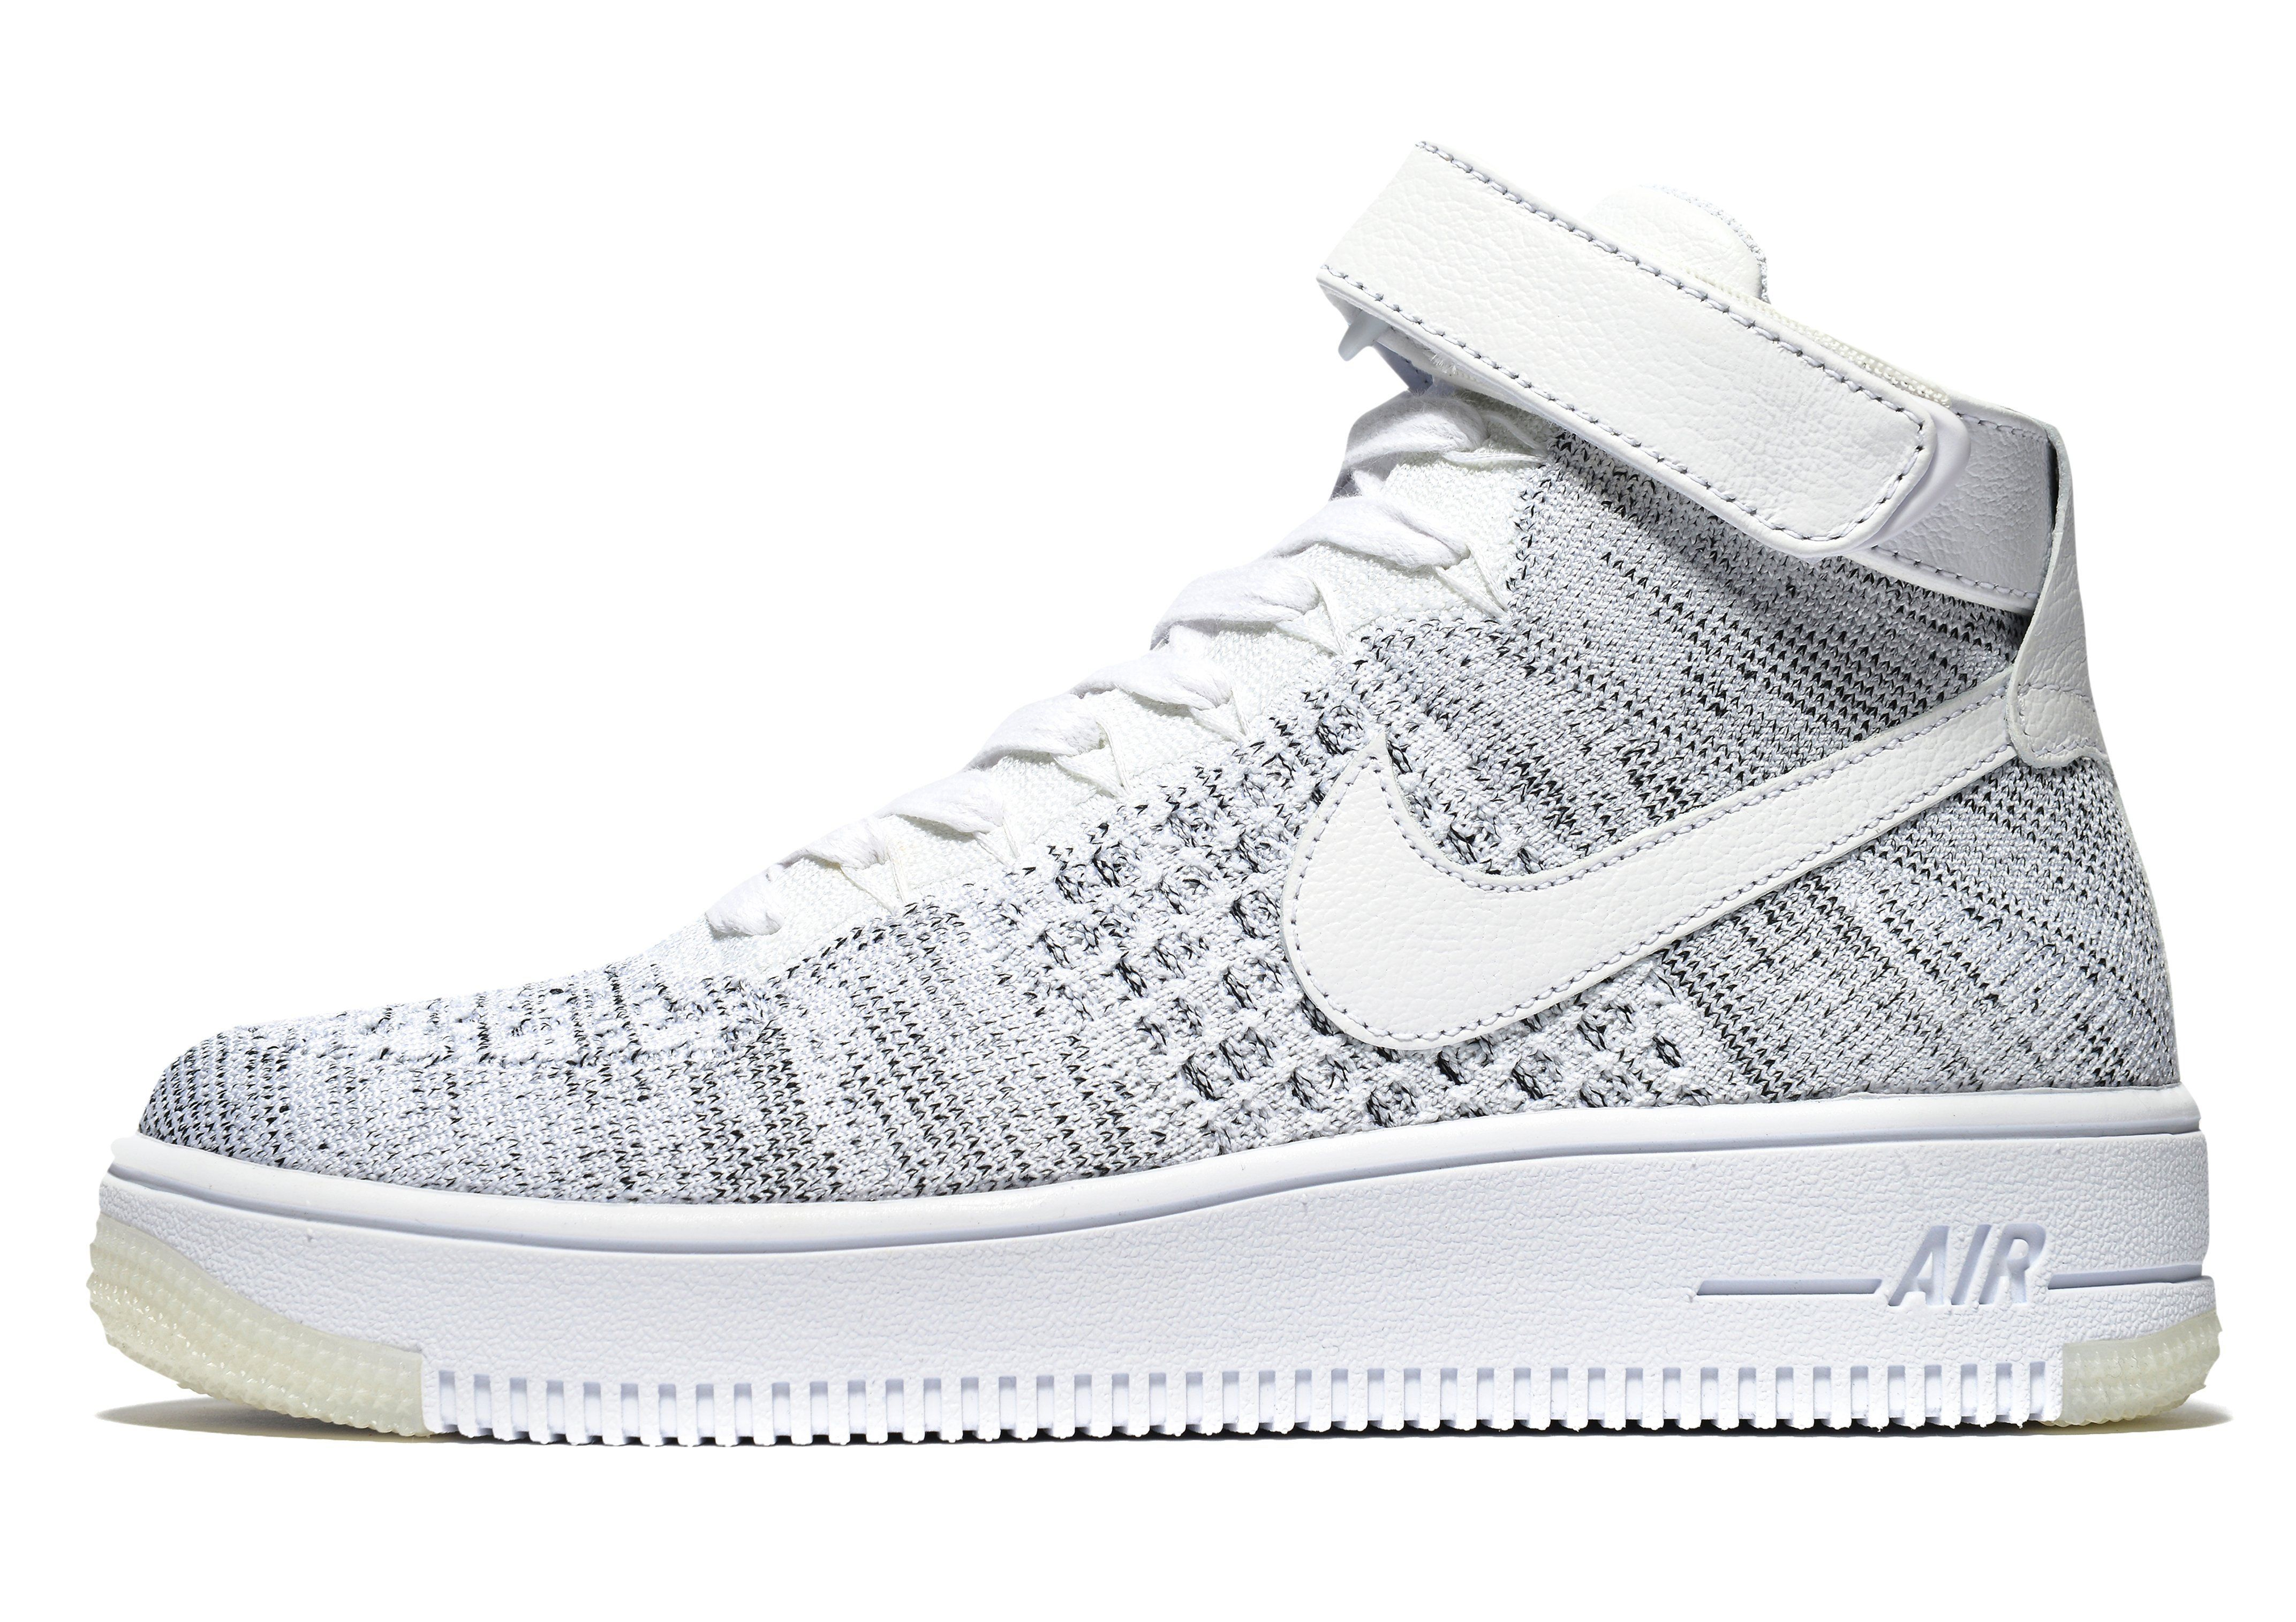 Nike Air Force 1 Mid Flyknit Women's Shop online for Nike